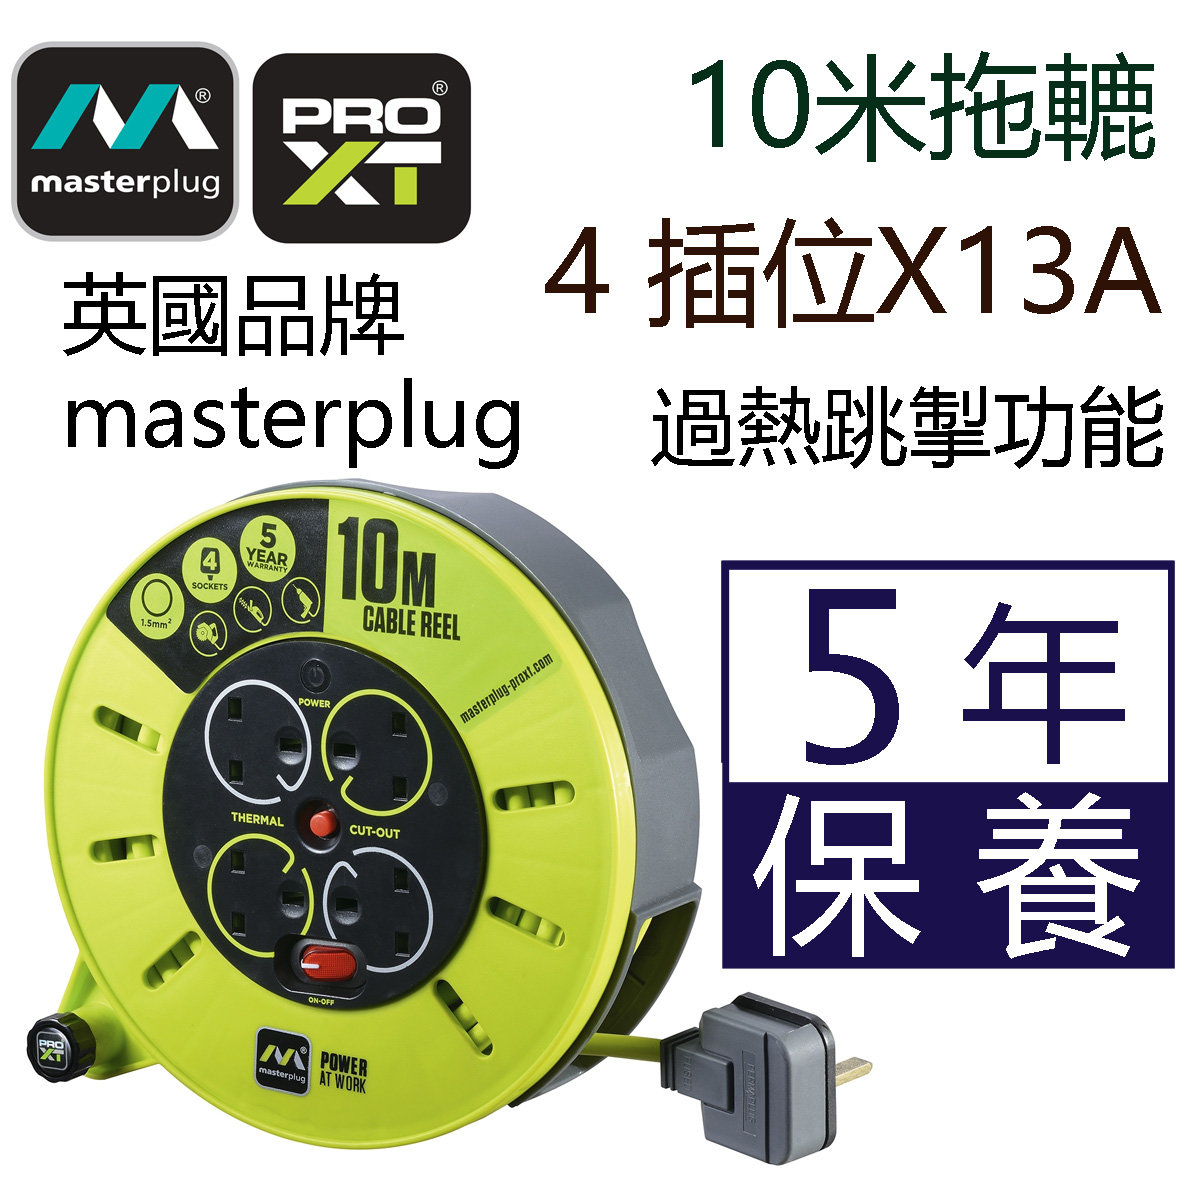 10M Cassette Reel 4X 13A PRO-XT DURABLE WITH INTERGRATED SWITCH THERMAL CUT-OUT - CMU10134SL